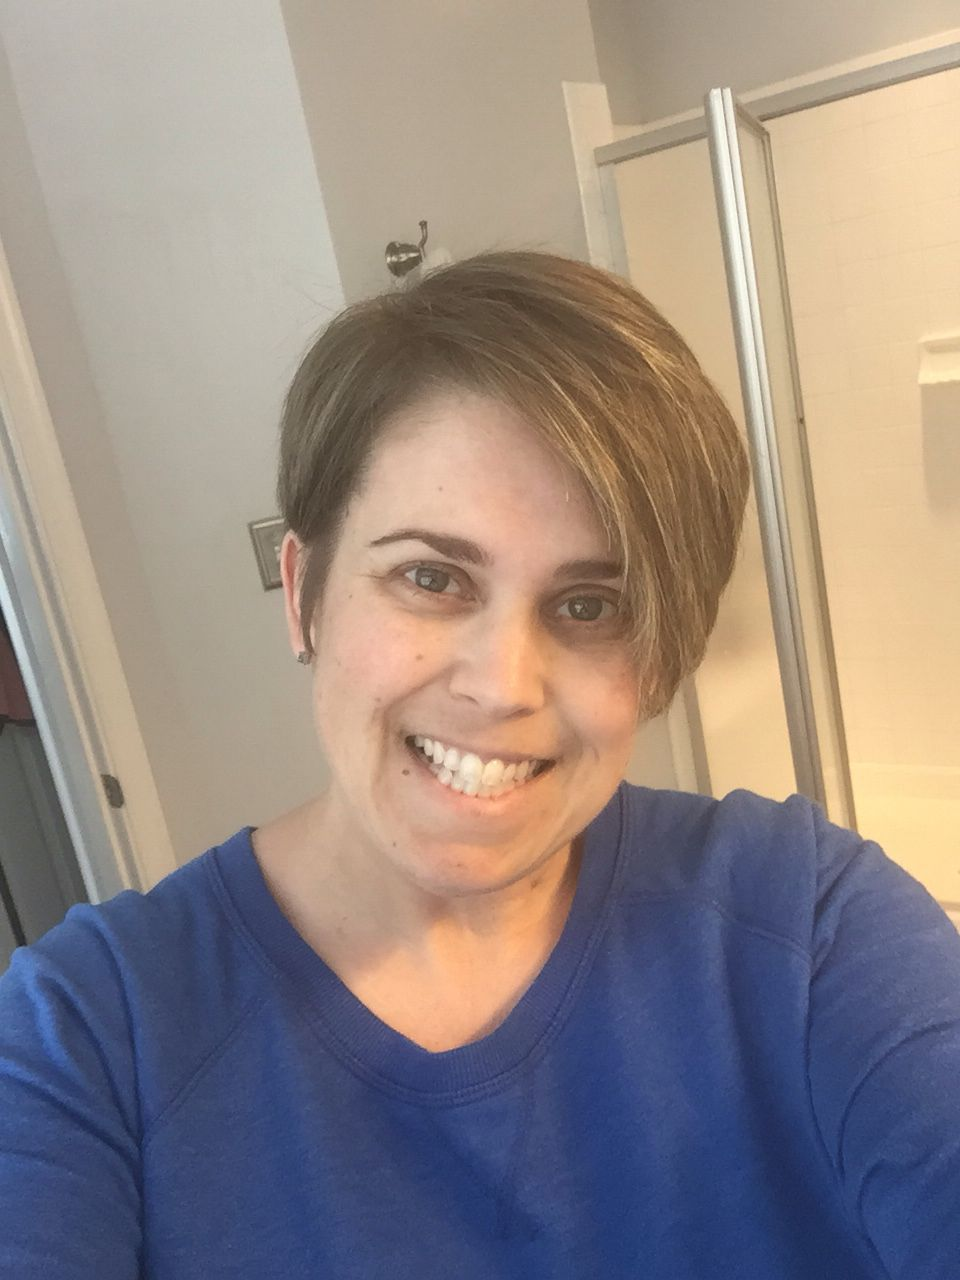 My New Pixie Style Hair Cut Love It And So Easy To Fix Short